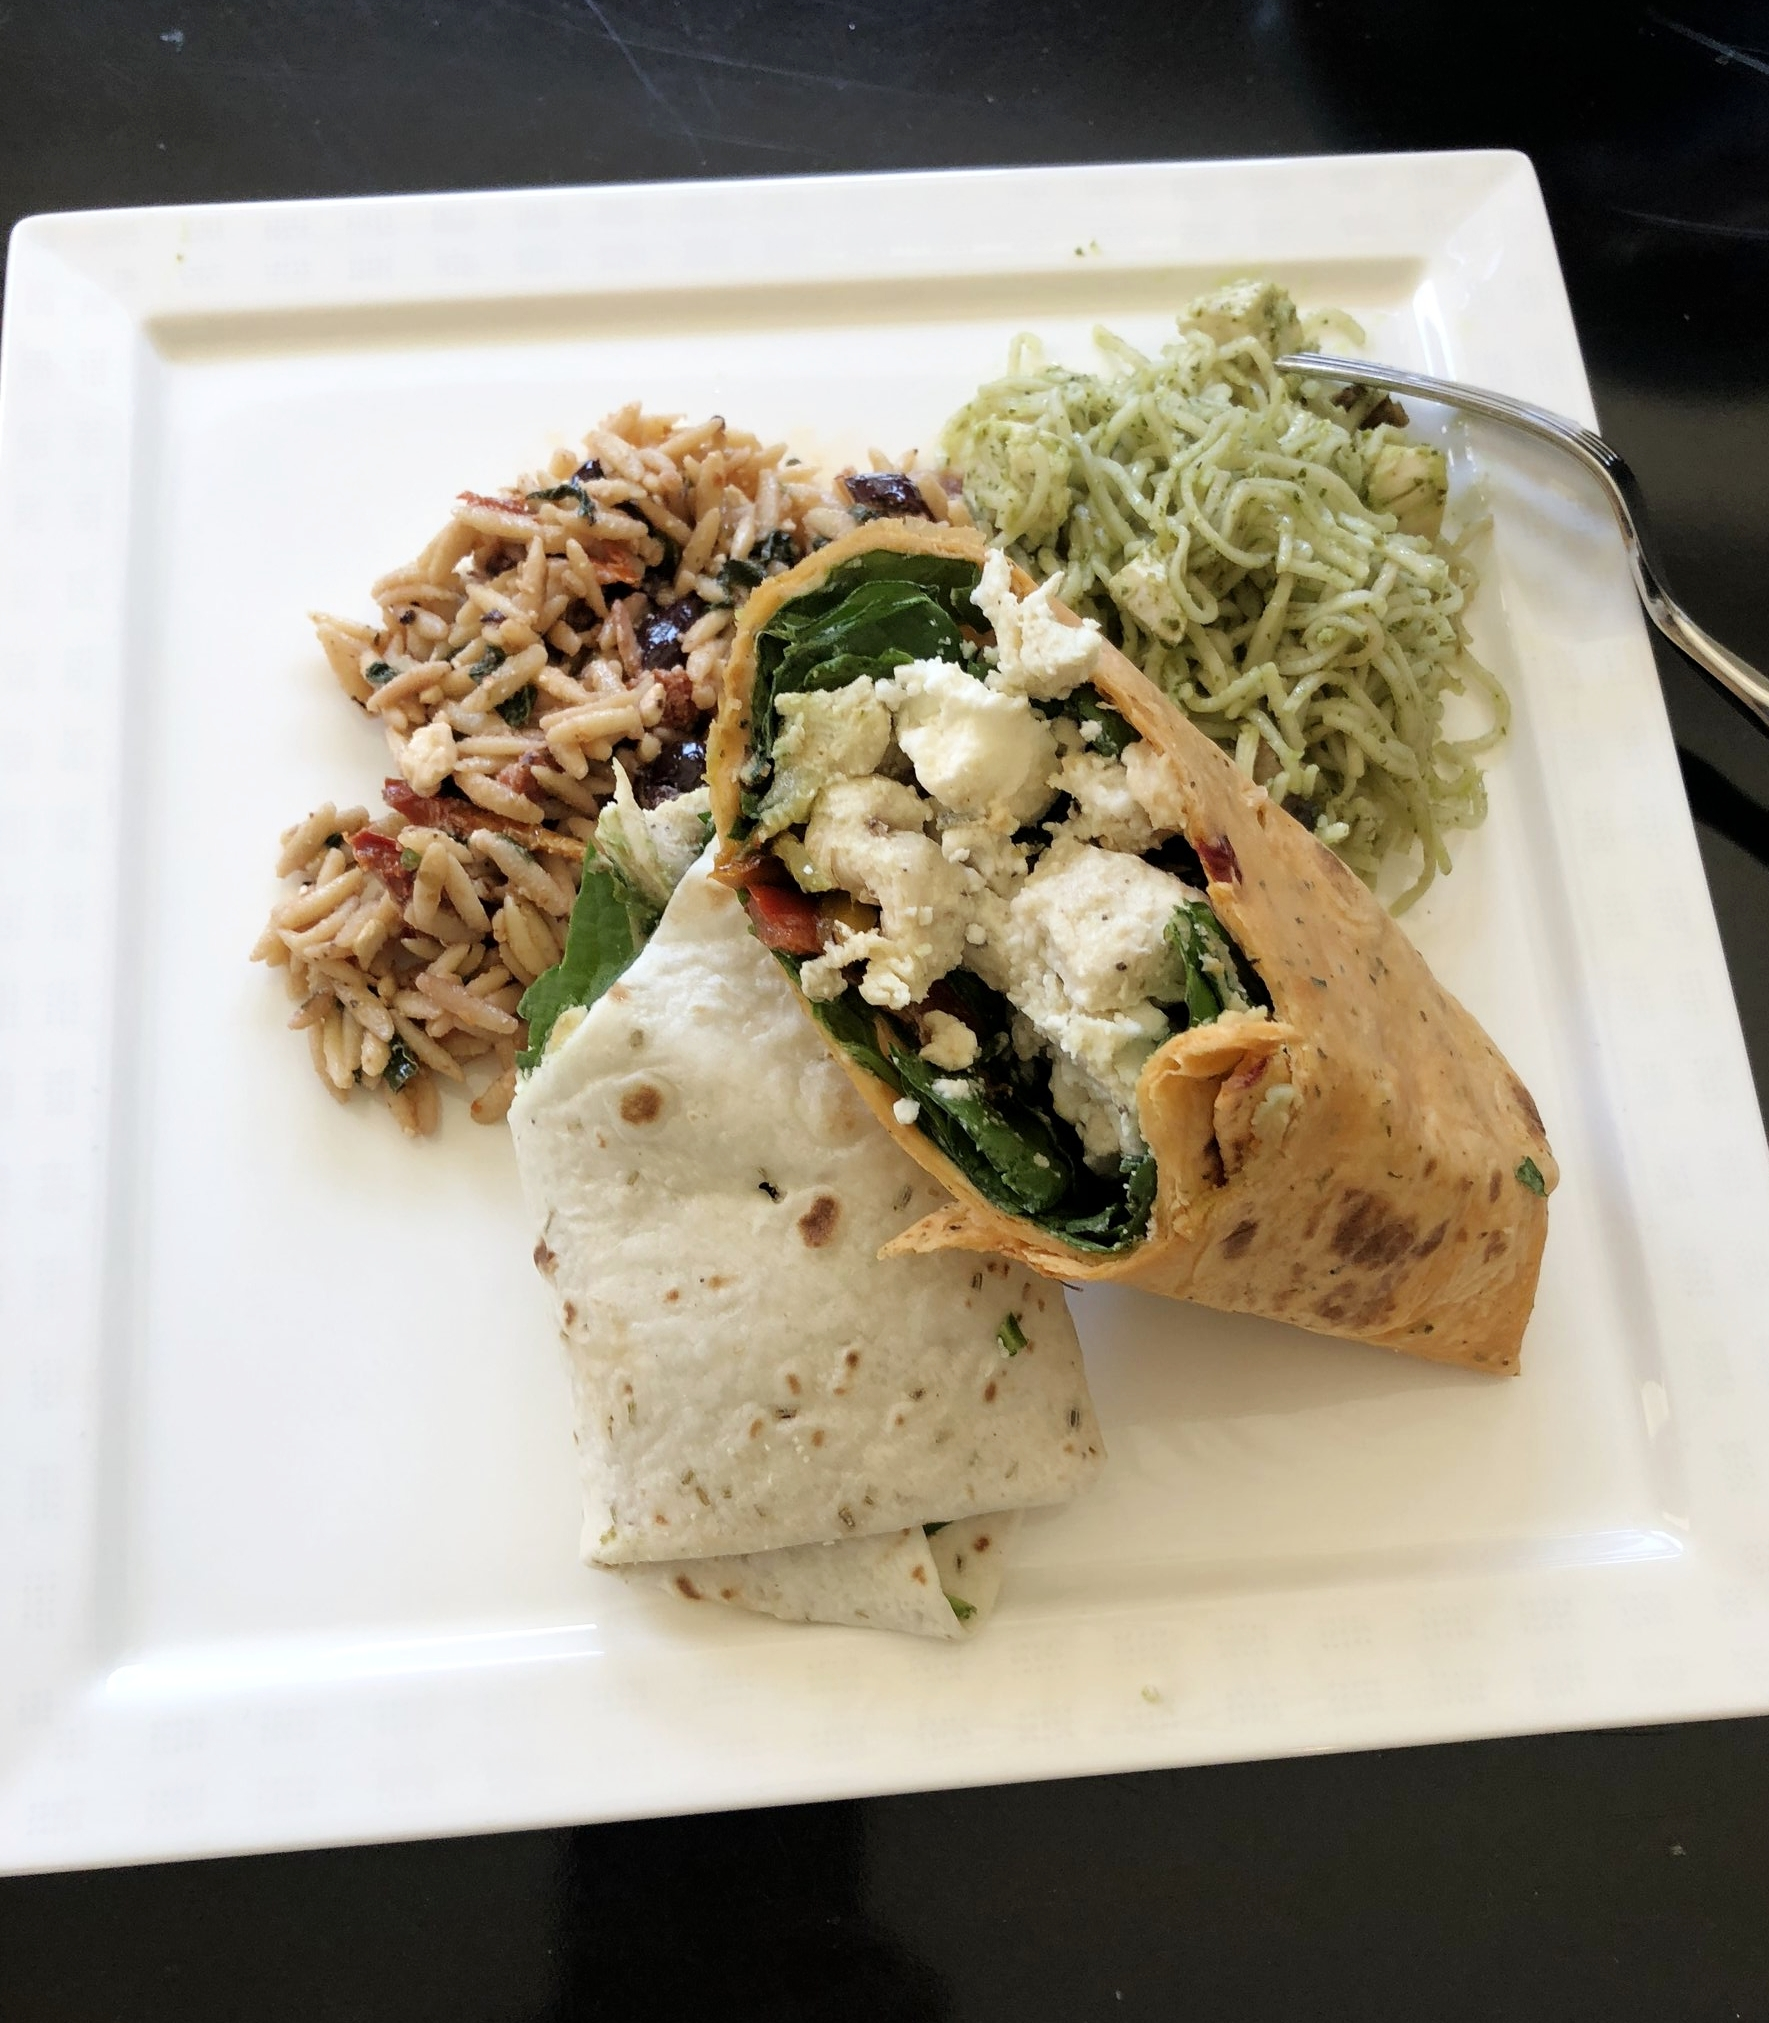 Ladies who luncheon menu and recipe guide on www.ChefShayna.com. and let's not forget the leftovers.